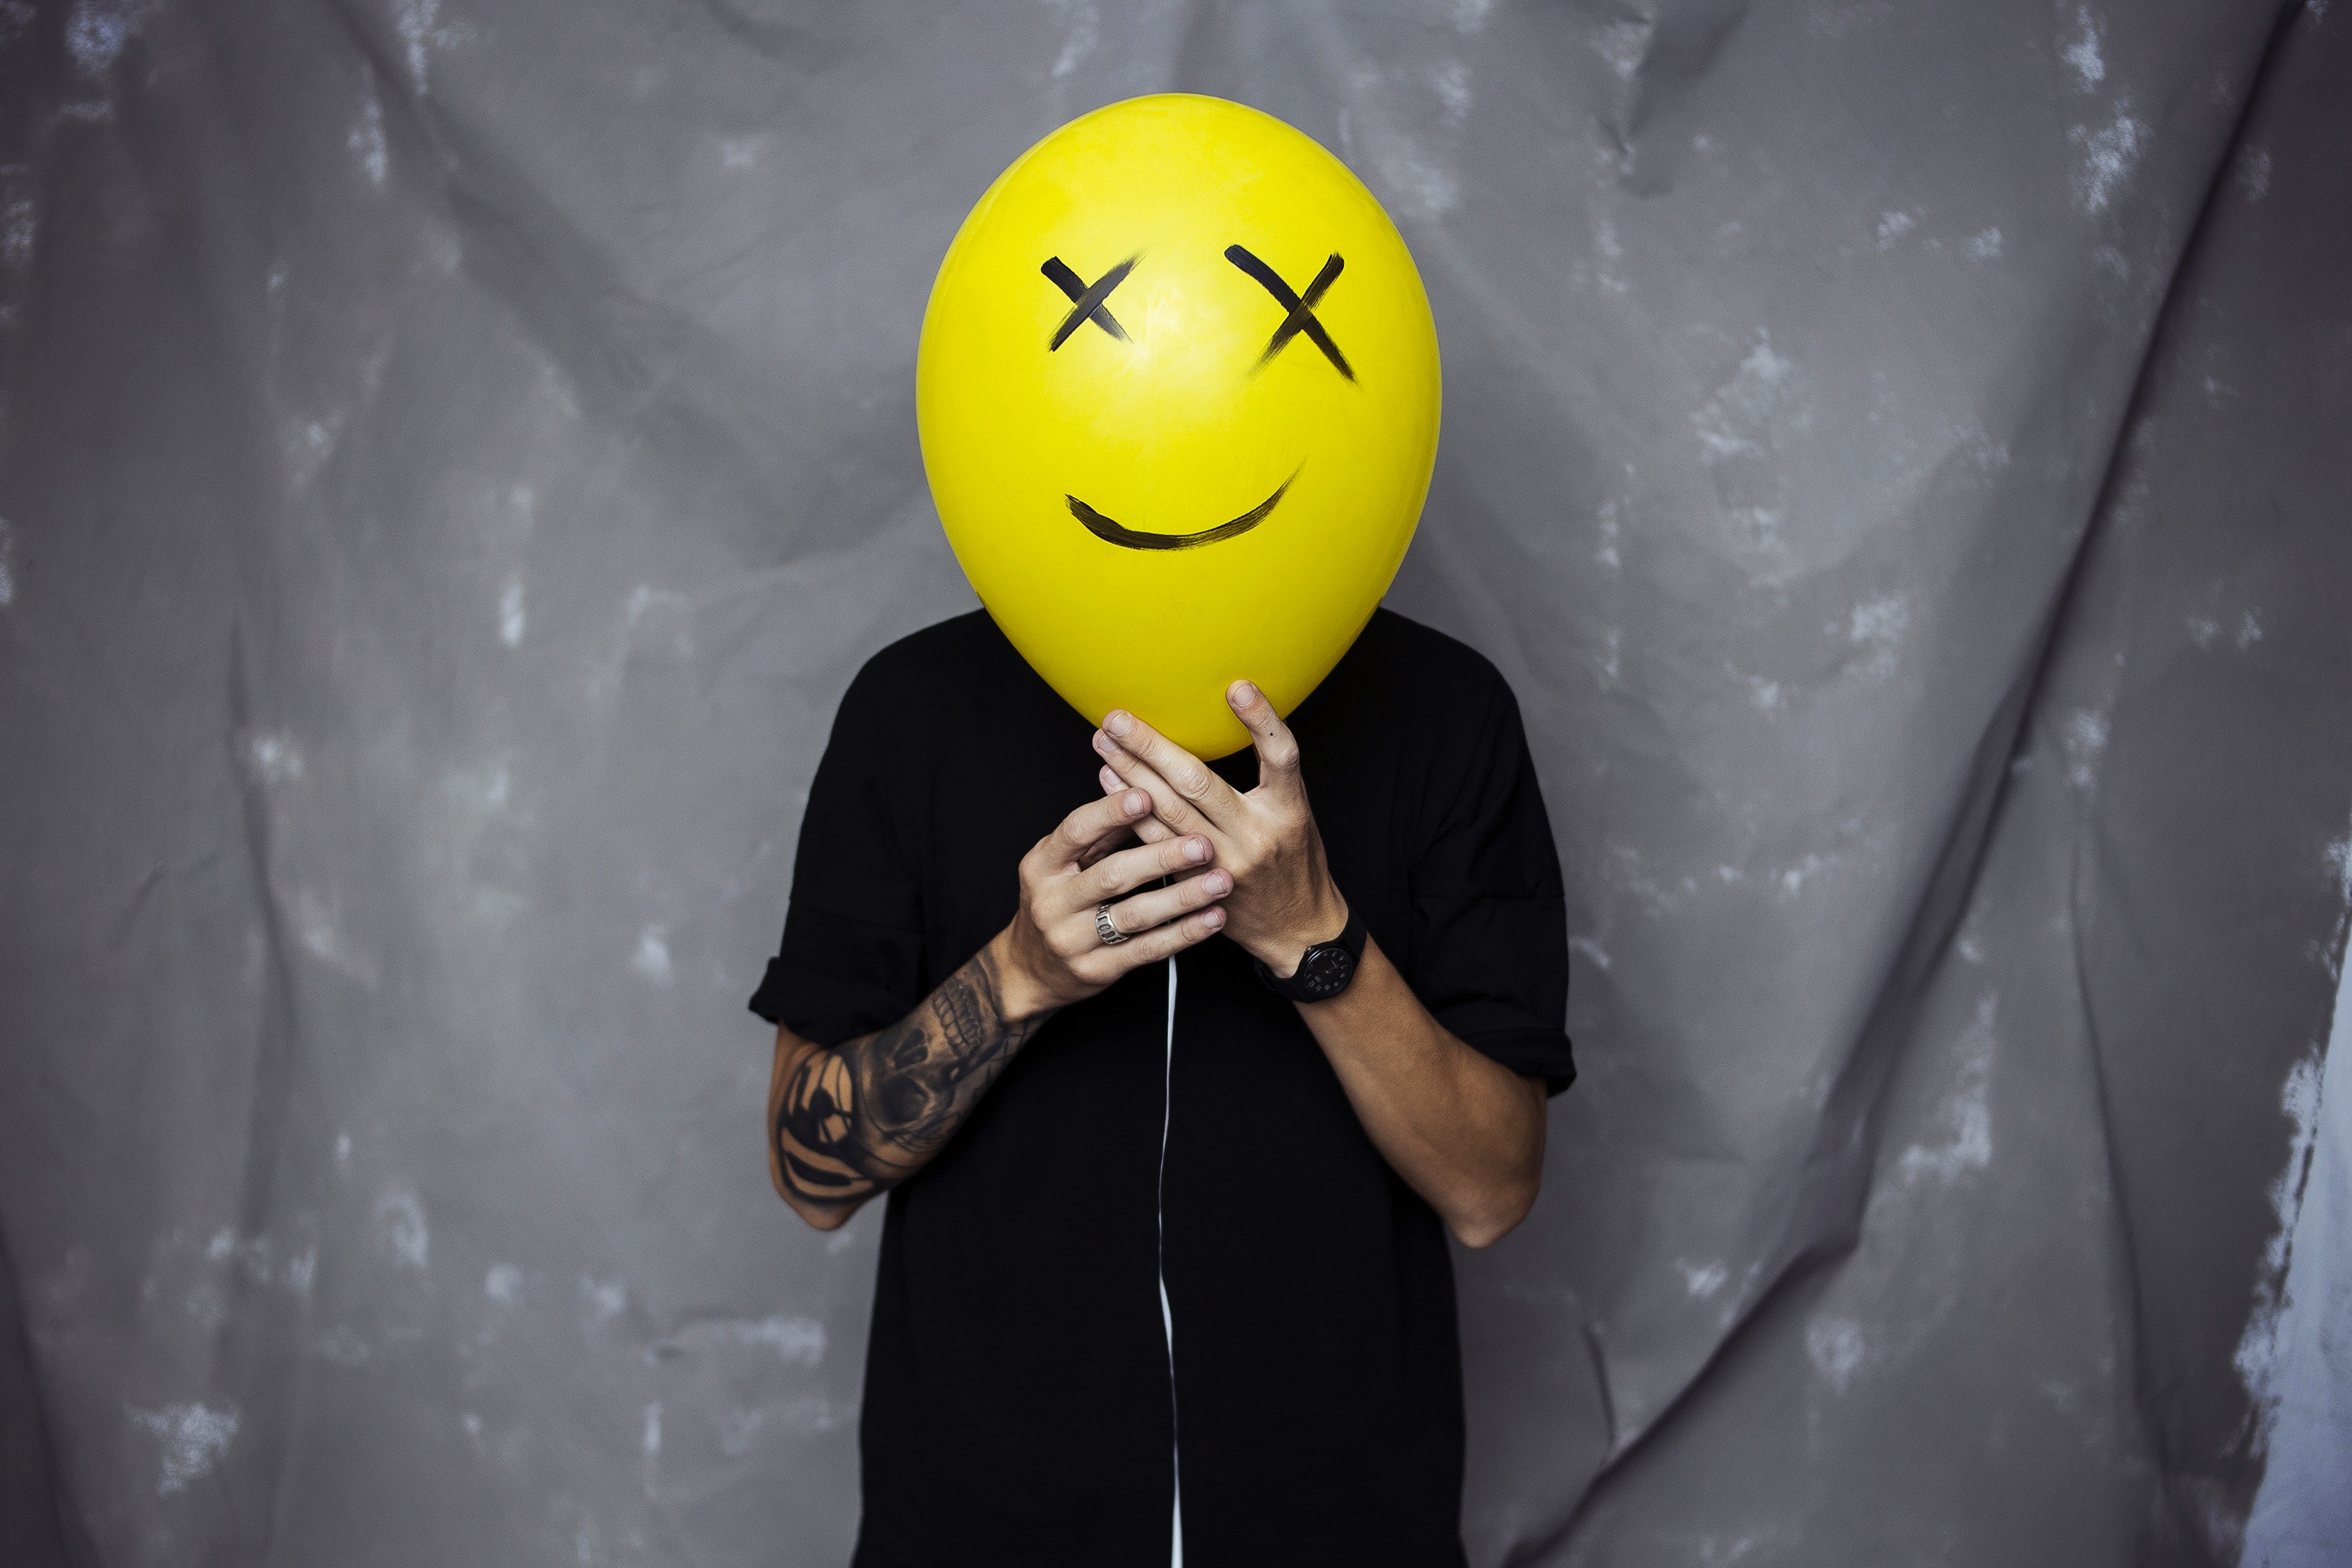 112007 Screensavers and Wallpapers Emoticon for phone. Download Miscellanea, Miscellaneous, Balloon, Hands, Tattoo, Emoticon, Smiley pictures for free